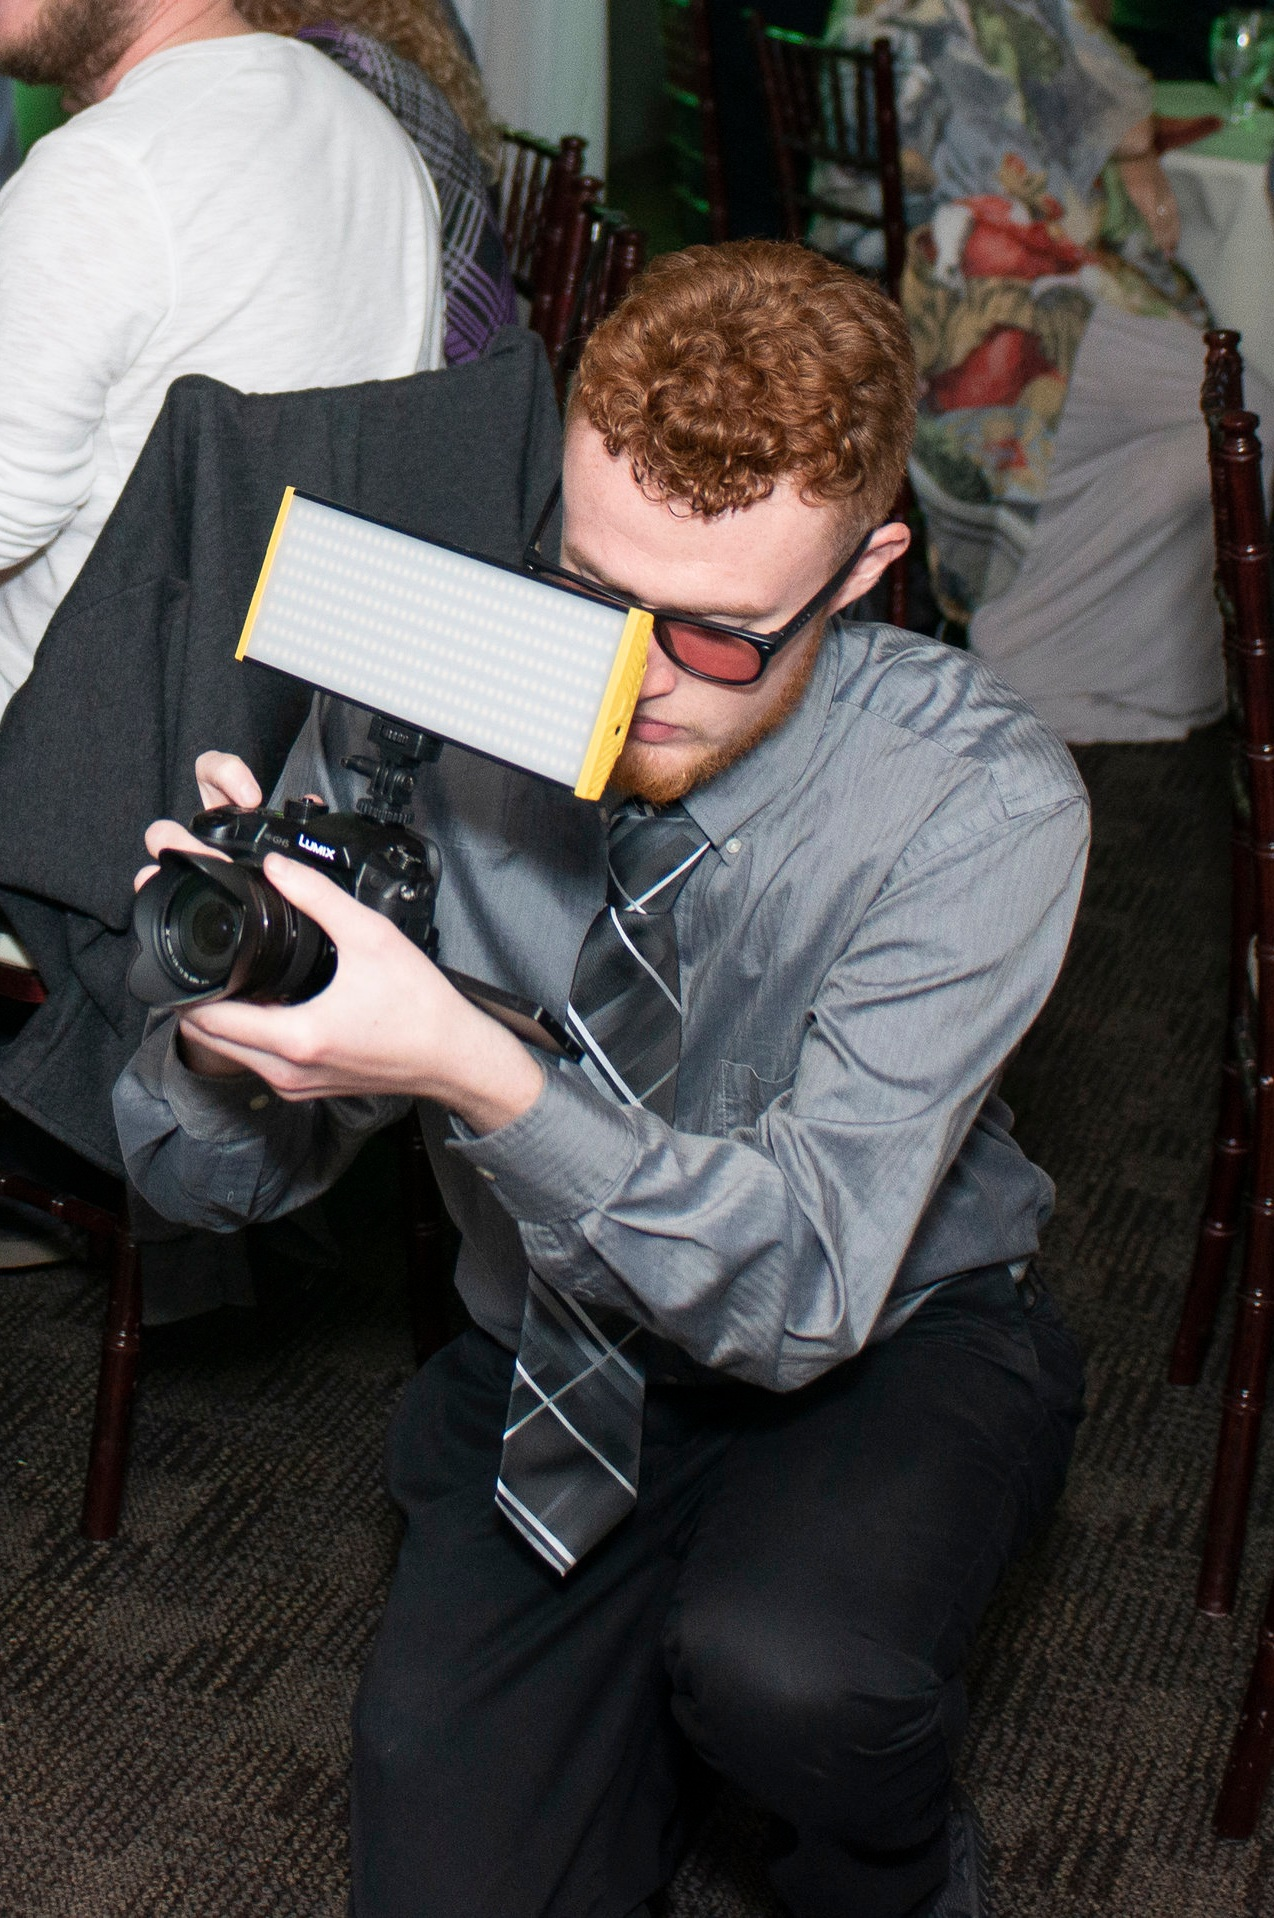 Video - We can make your event a movie. With multiple high-quality cameras, lighting and extensive audio capabilities, we can capture every angle of any event.